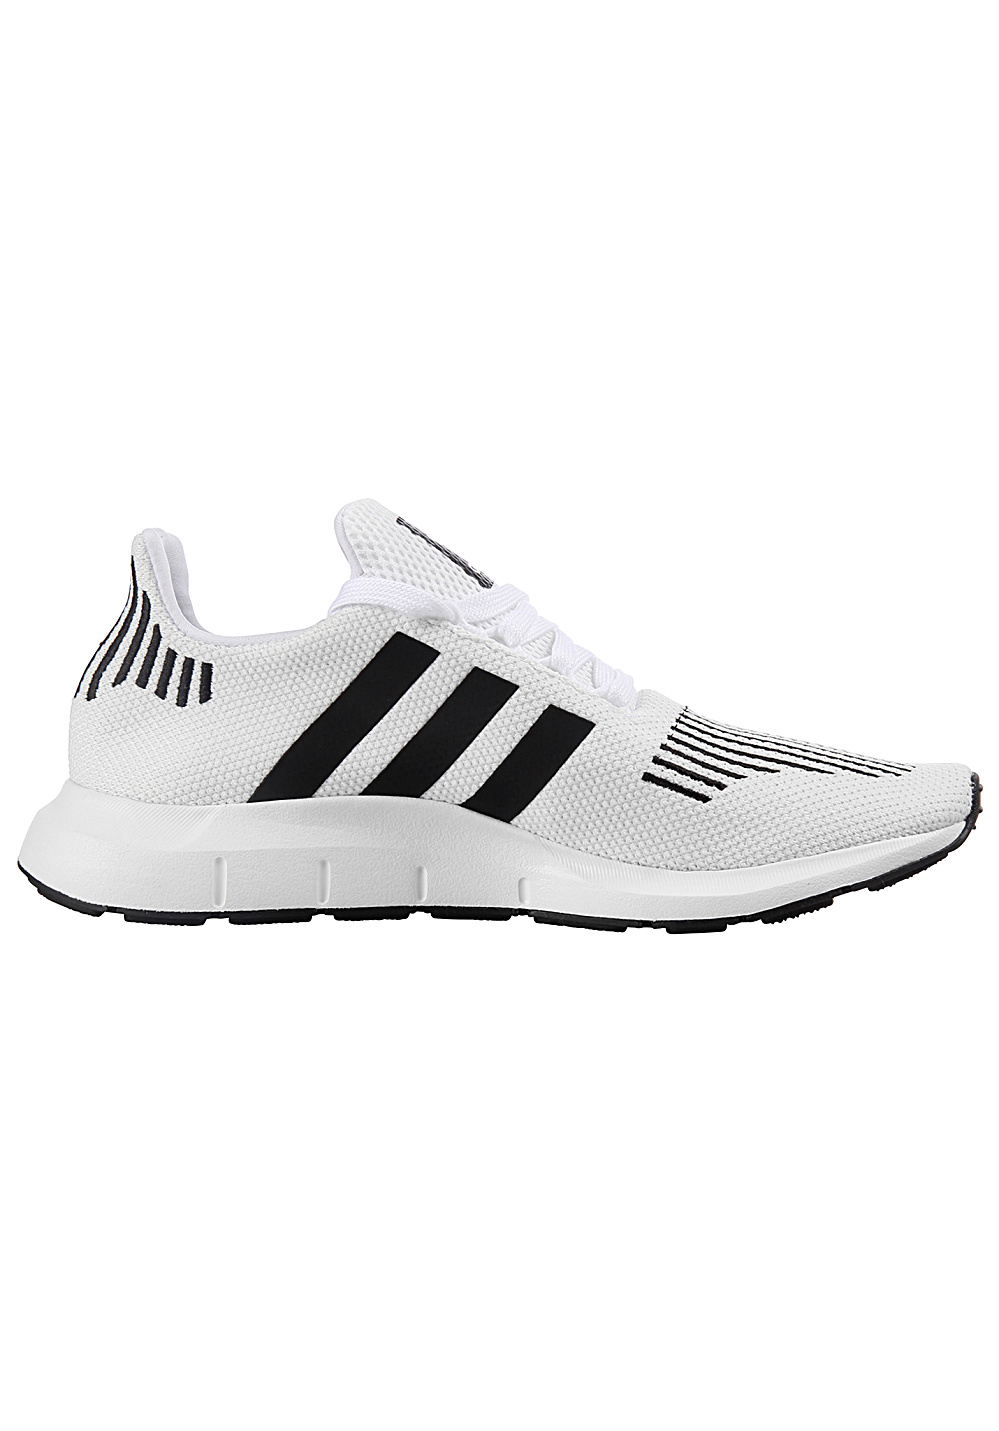 reputable site 29c83 10d49 ADIDAS ORIGINALS Swift Run - Sneaker per Uomo - Bianco - Planet Sports